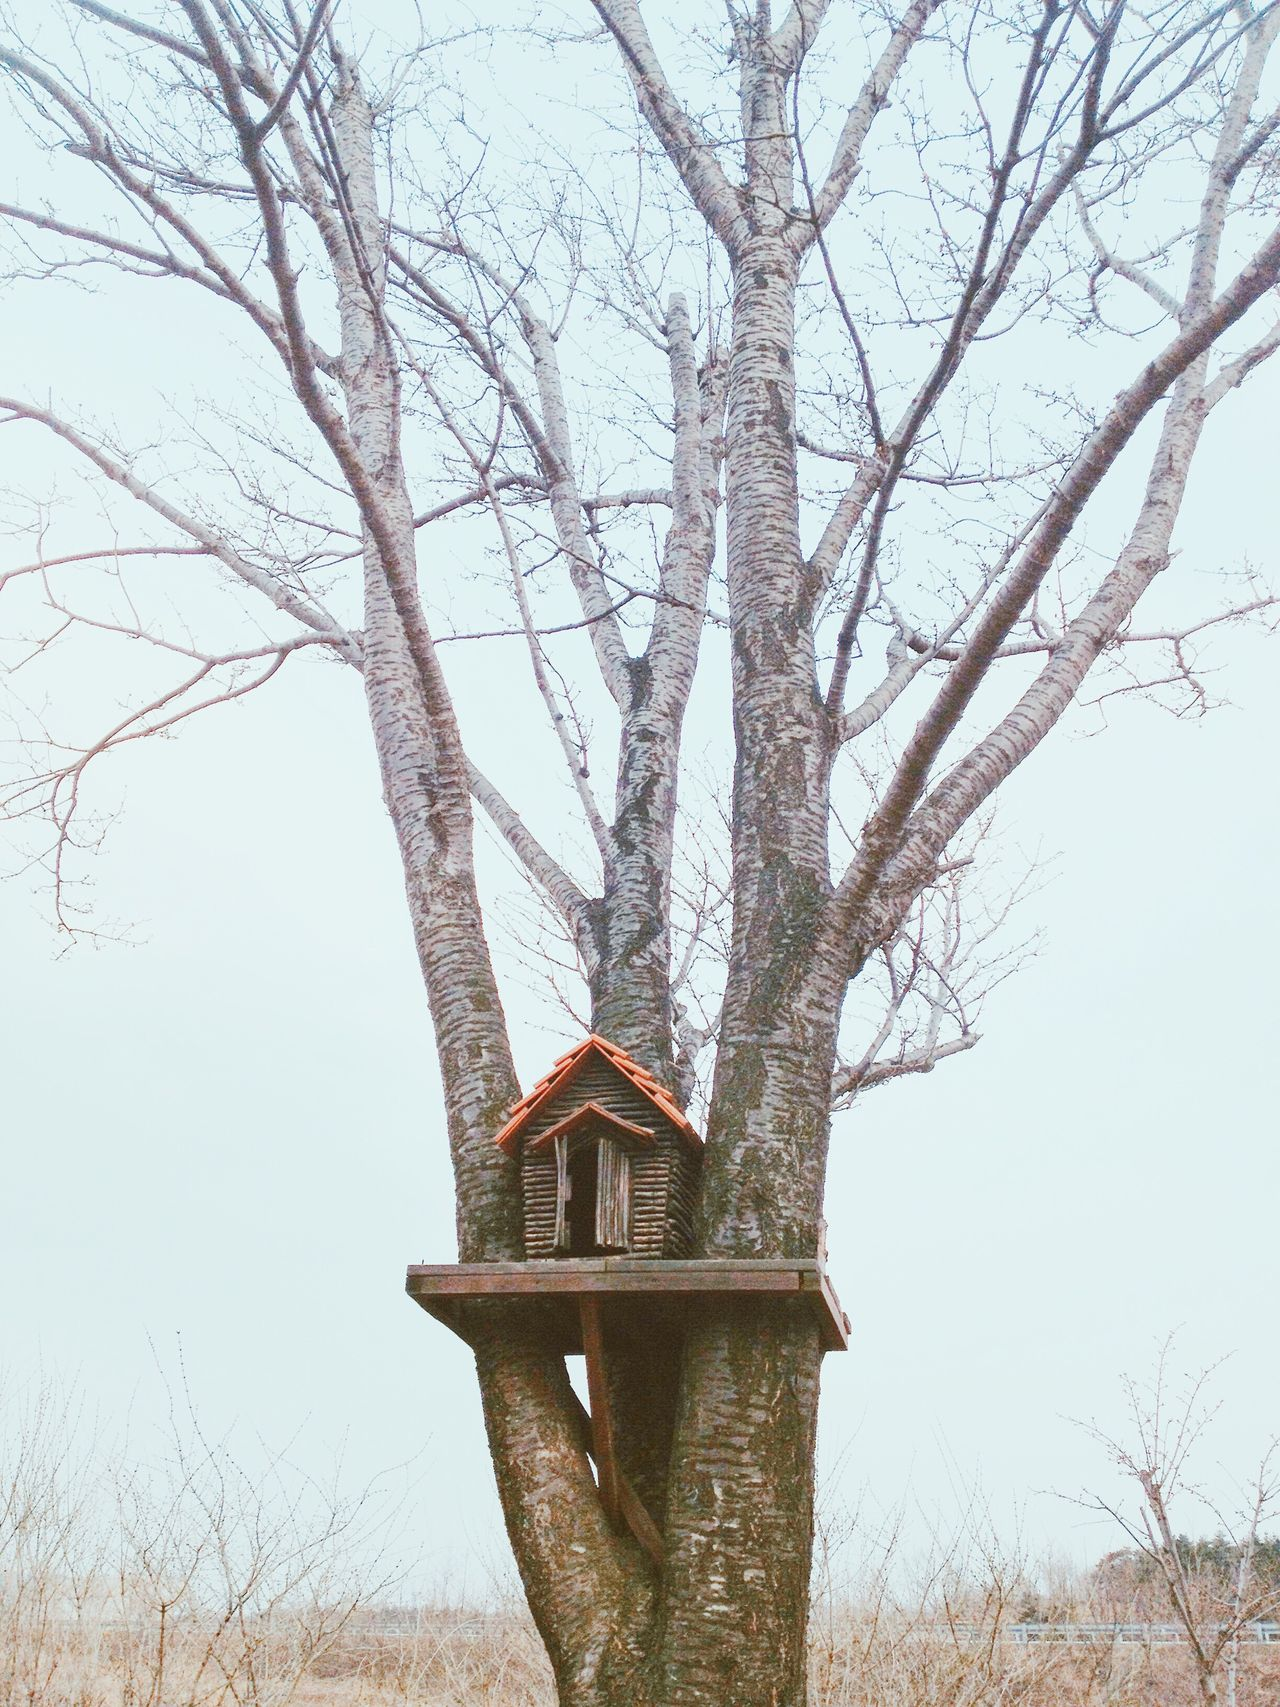 Wood Tree Nest Nature Birdhouse Bird Forest Winter House Box Hole Outsde Wooden Habitat Feed  Feeder Sky EyeEmNewHere EyeEmNewHere